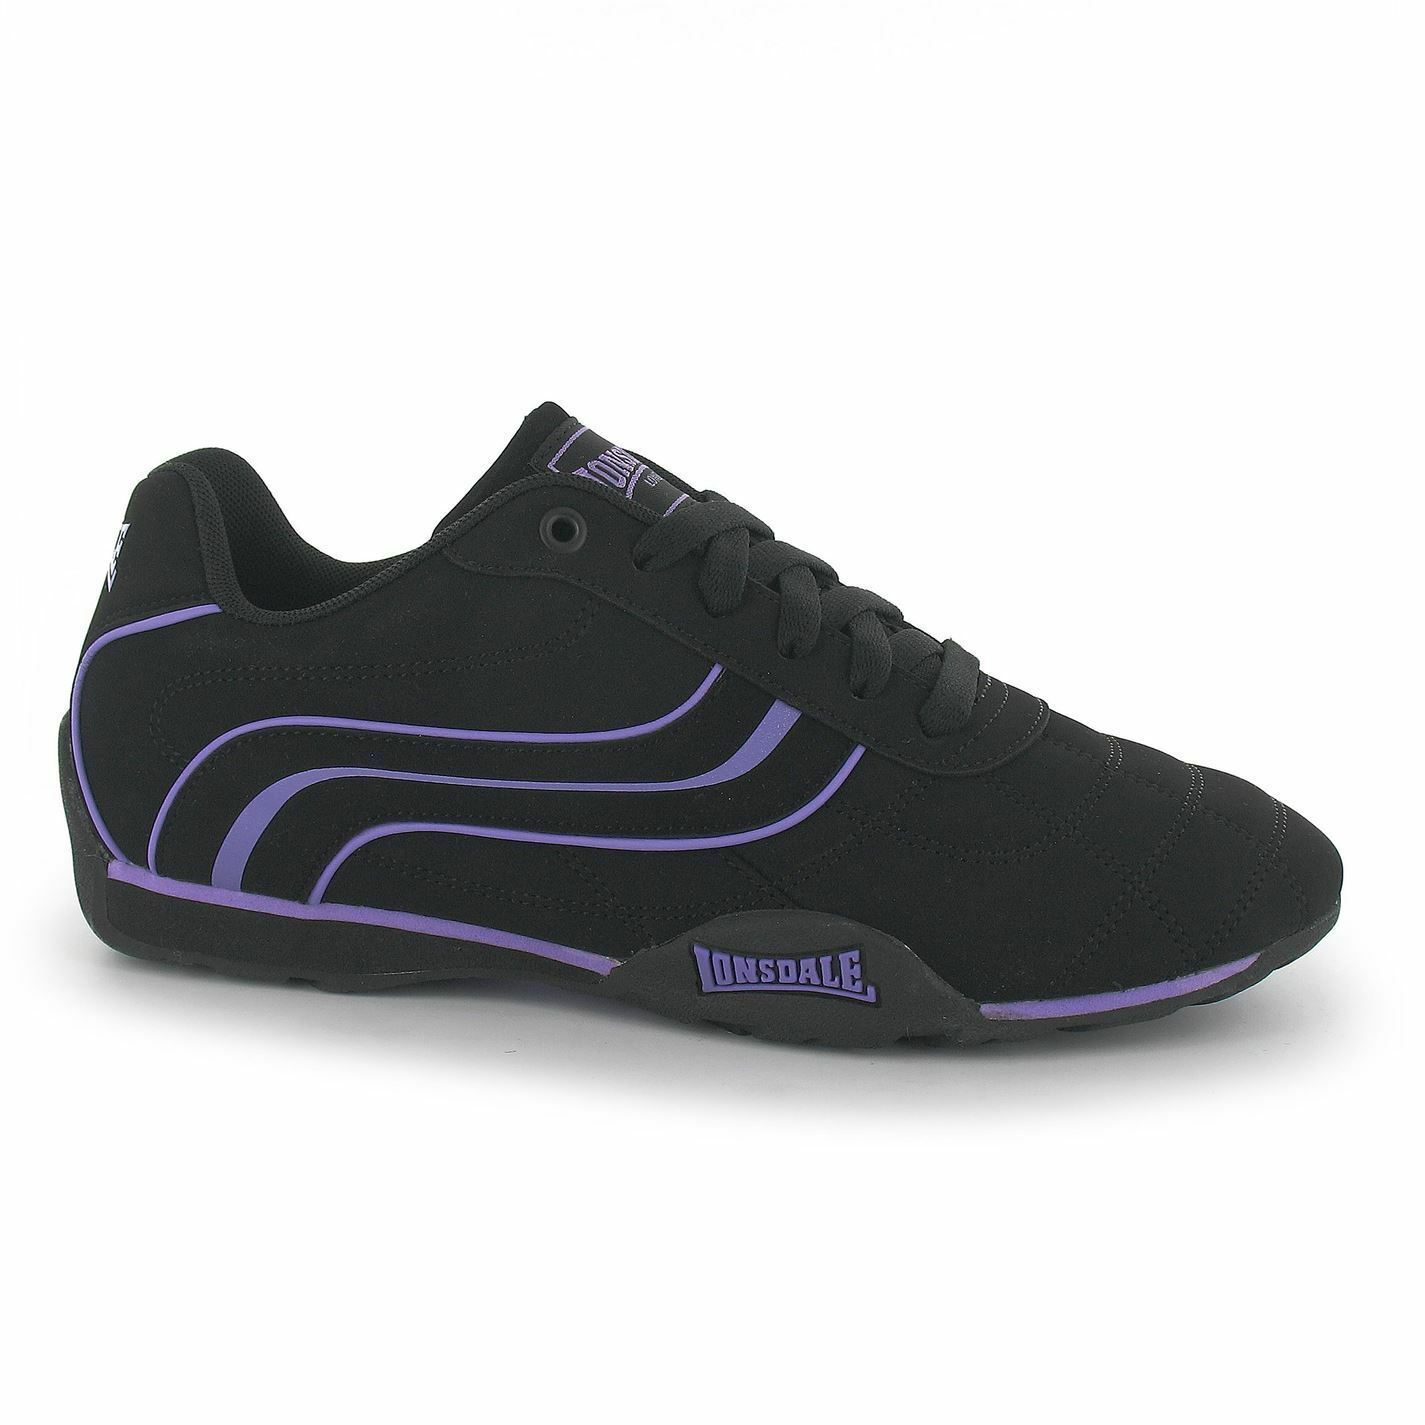 Lonsdale Camden Trainers Womens Black/Purple Casual Fashion Sneakers Shoes